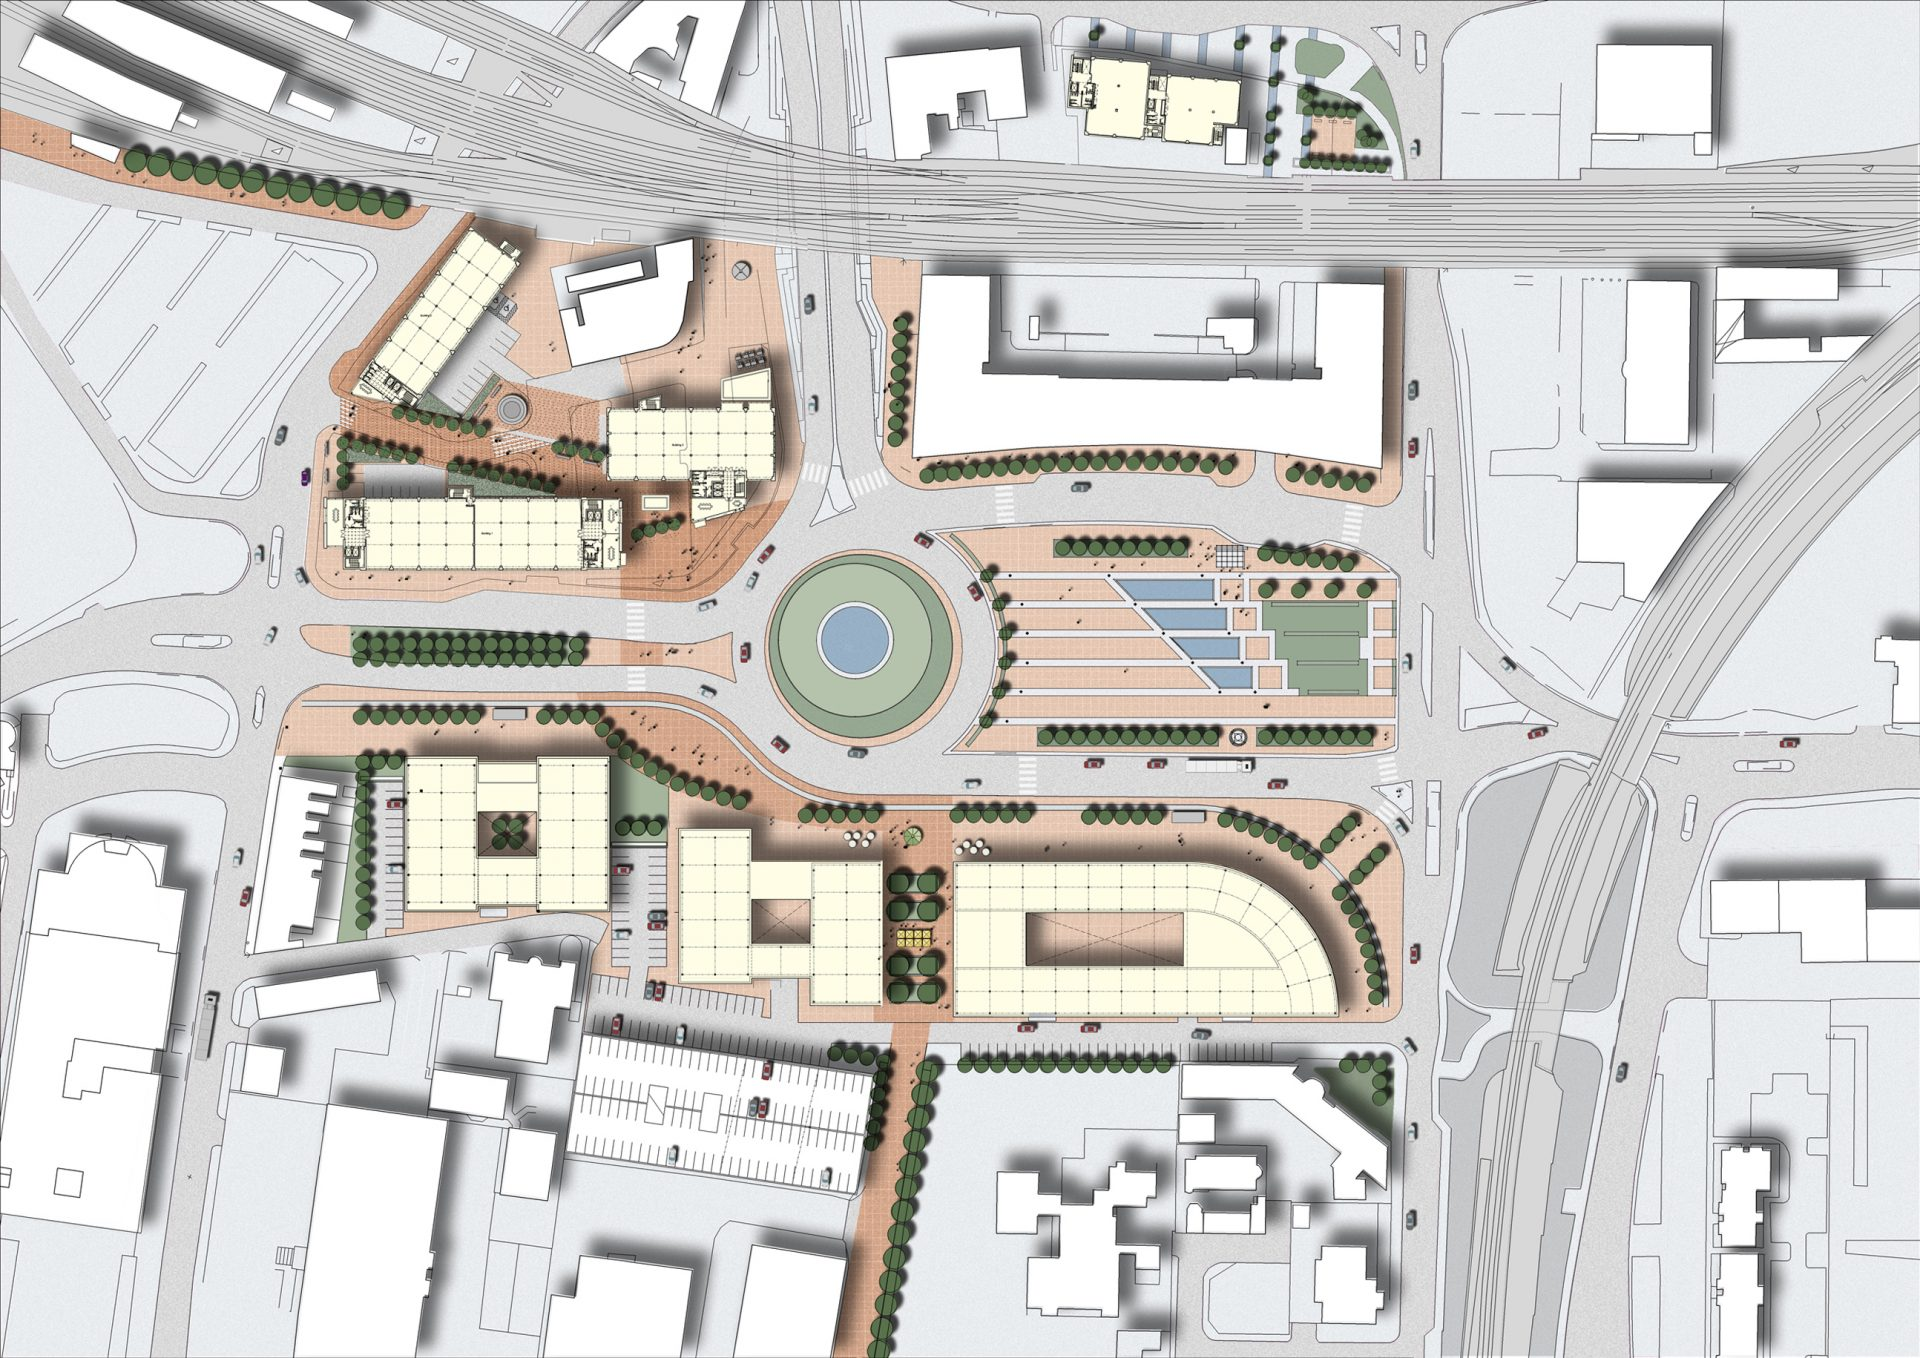 Callaghan Square Cardiff Office Buildings Masterplan